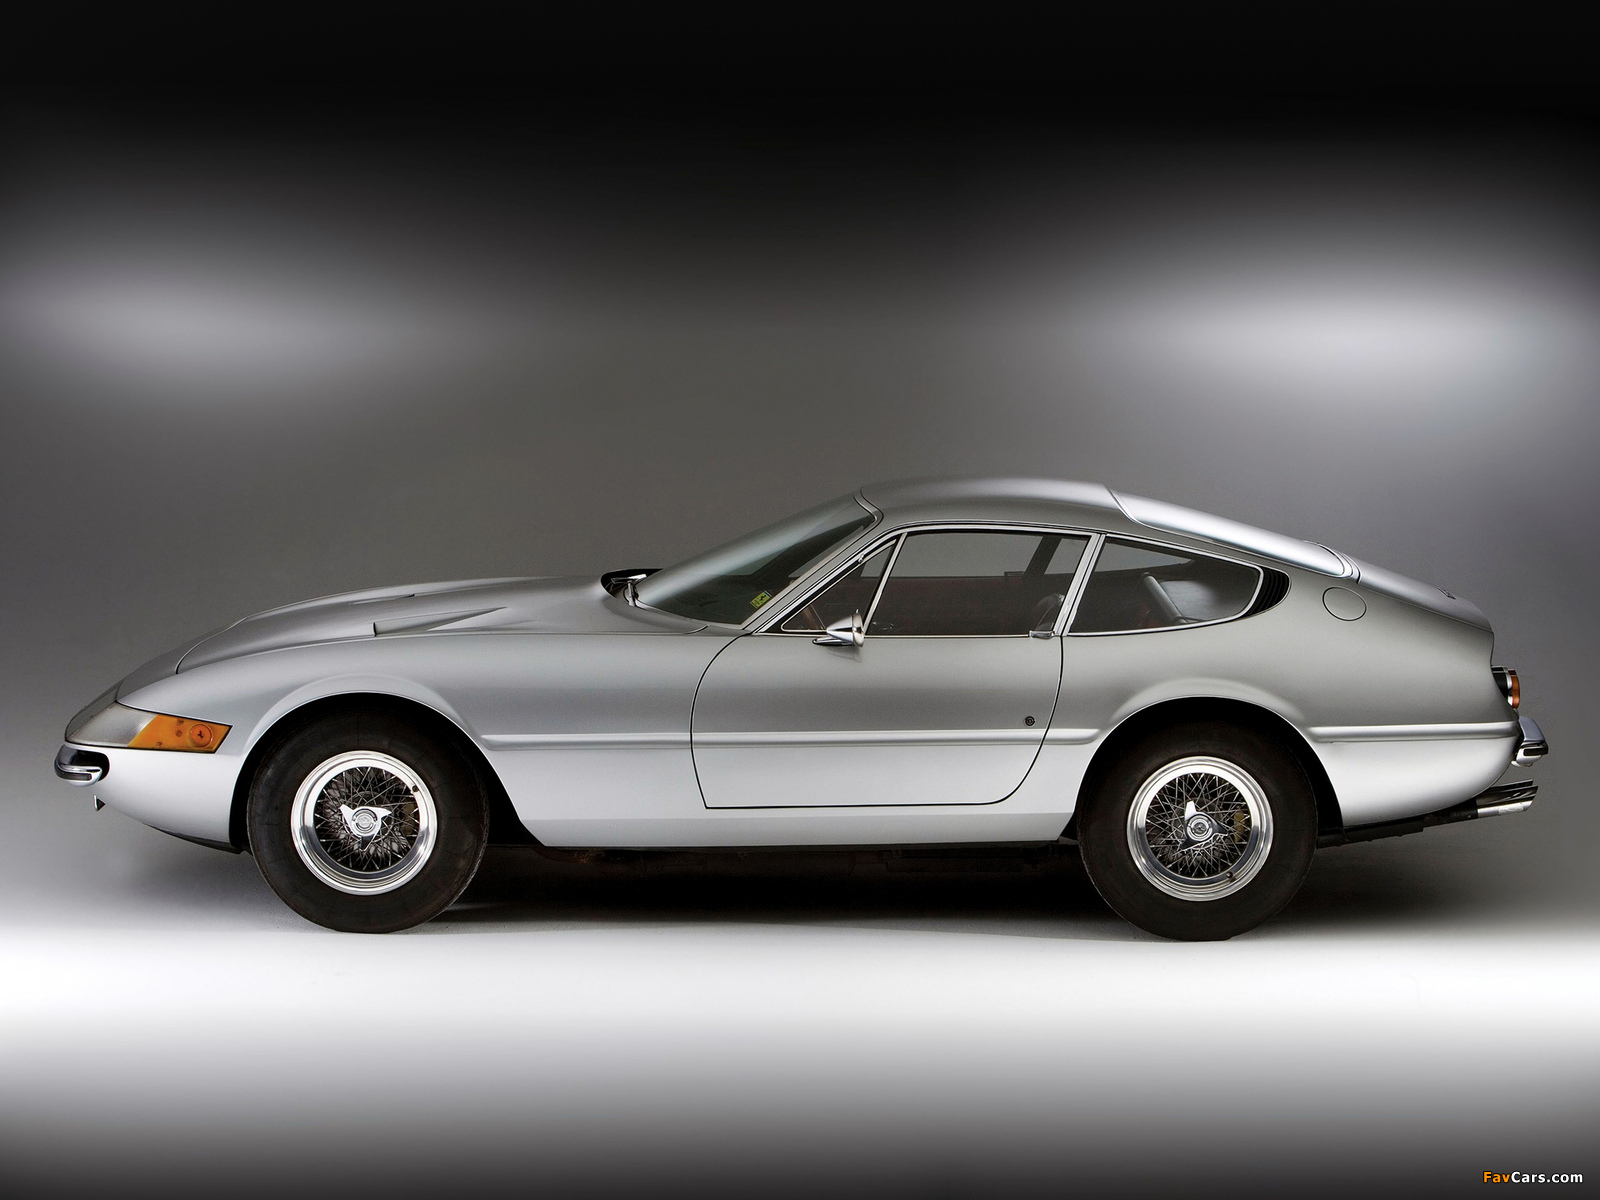 Pictures Of Ferrari 365 Gtb 4 Daytona 1968 74 1600x1200